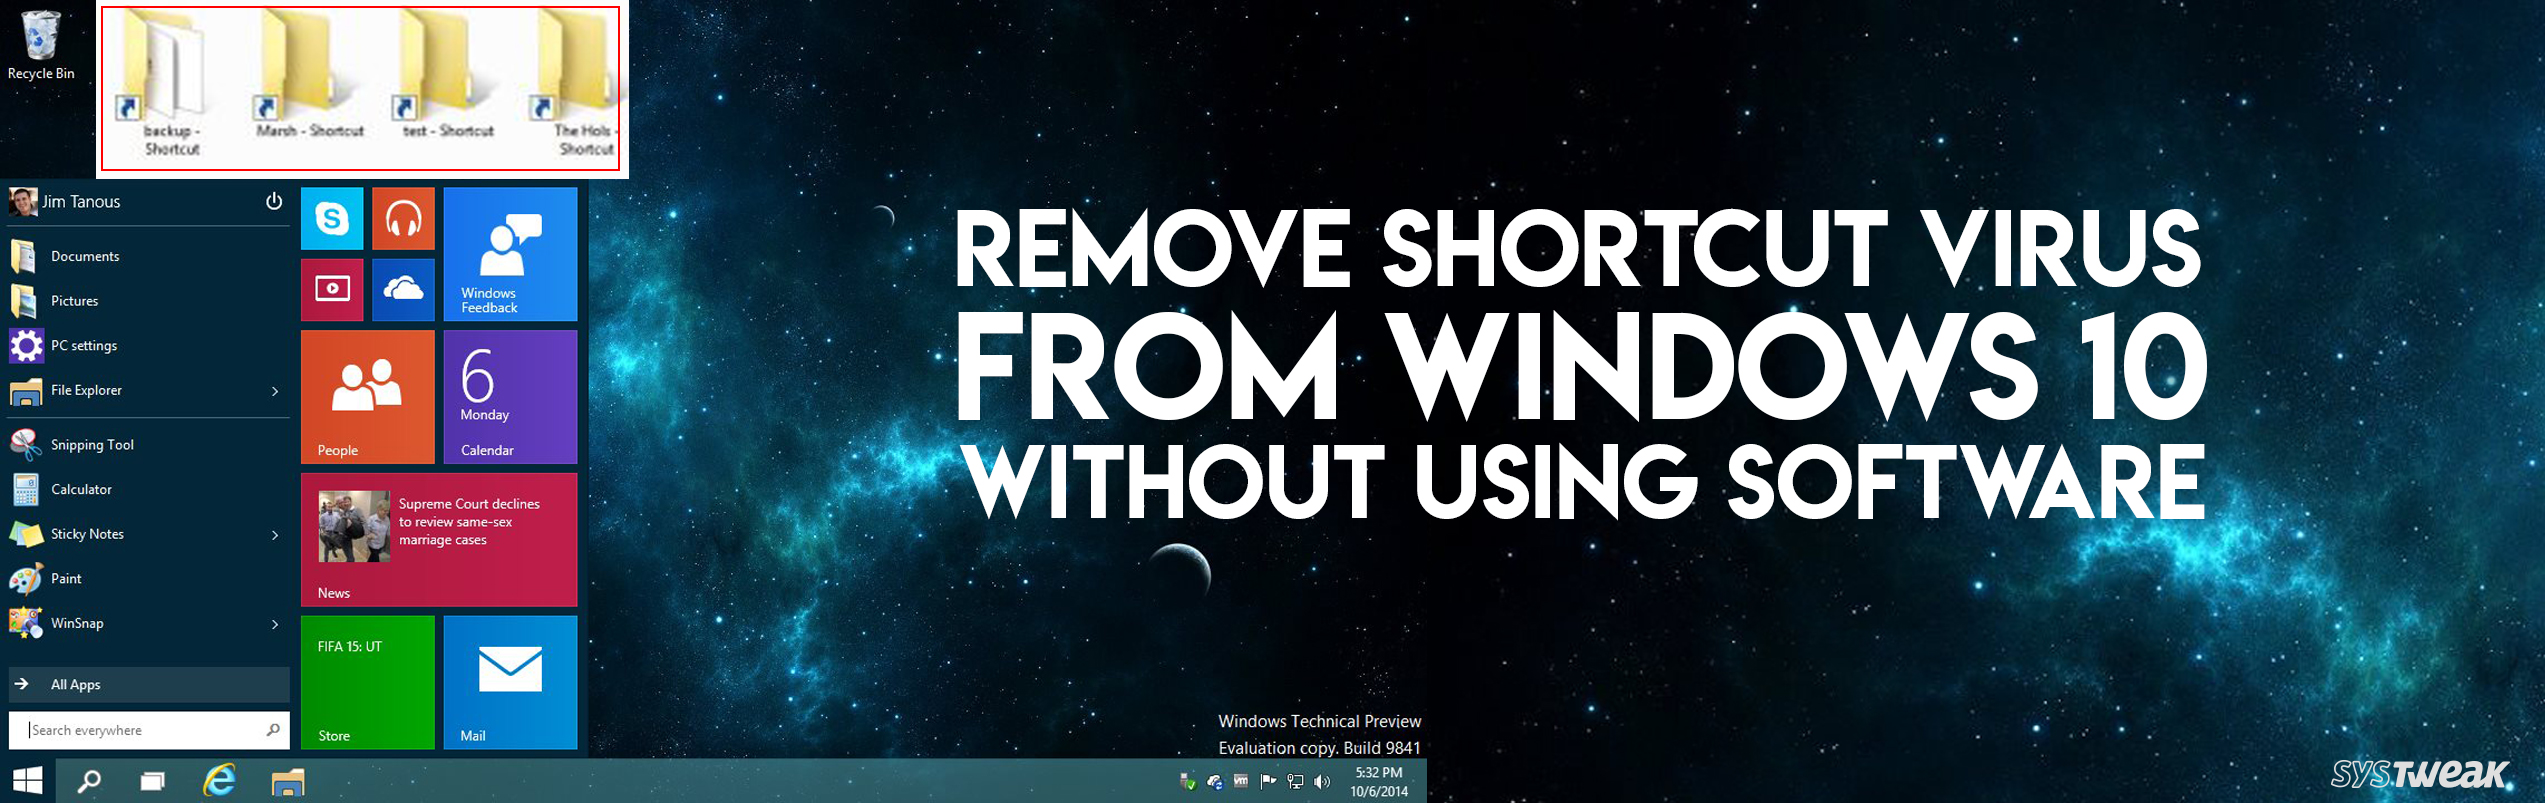 How To Get Rid Of Shortcut Virus From Windows 10